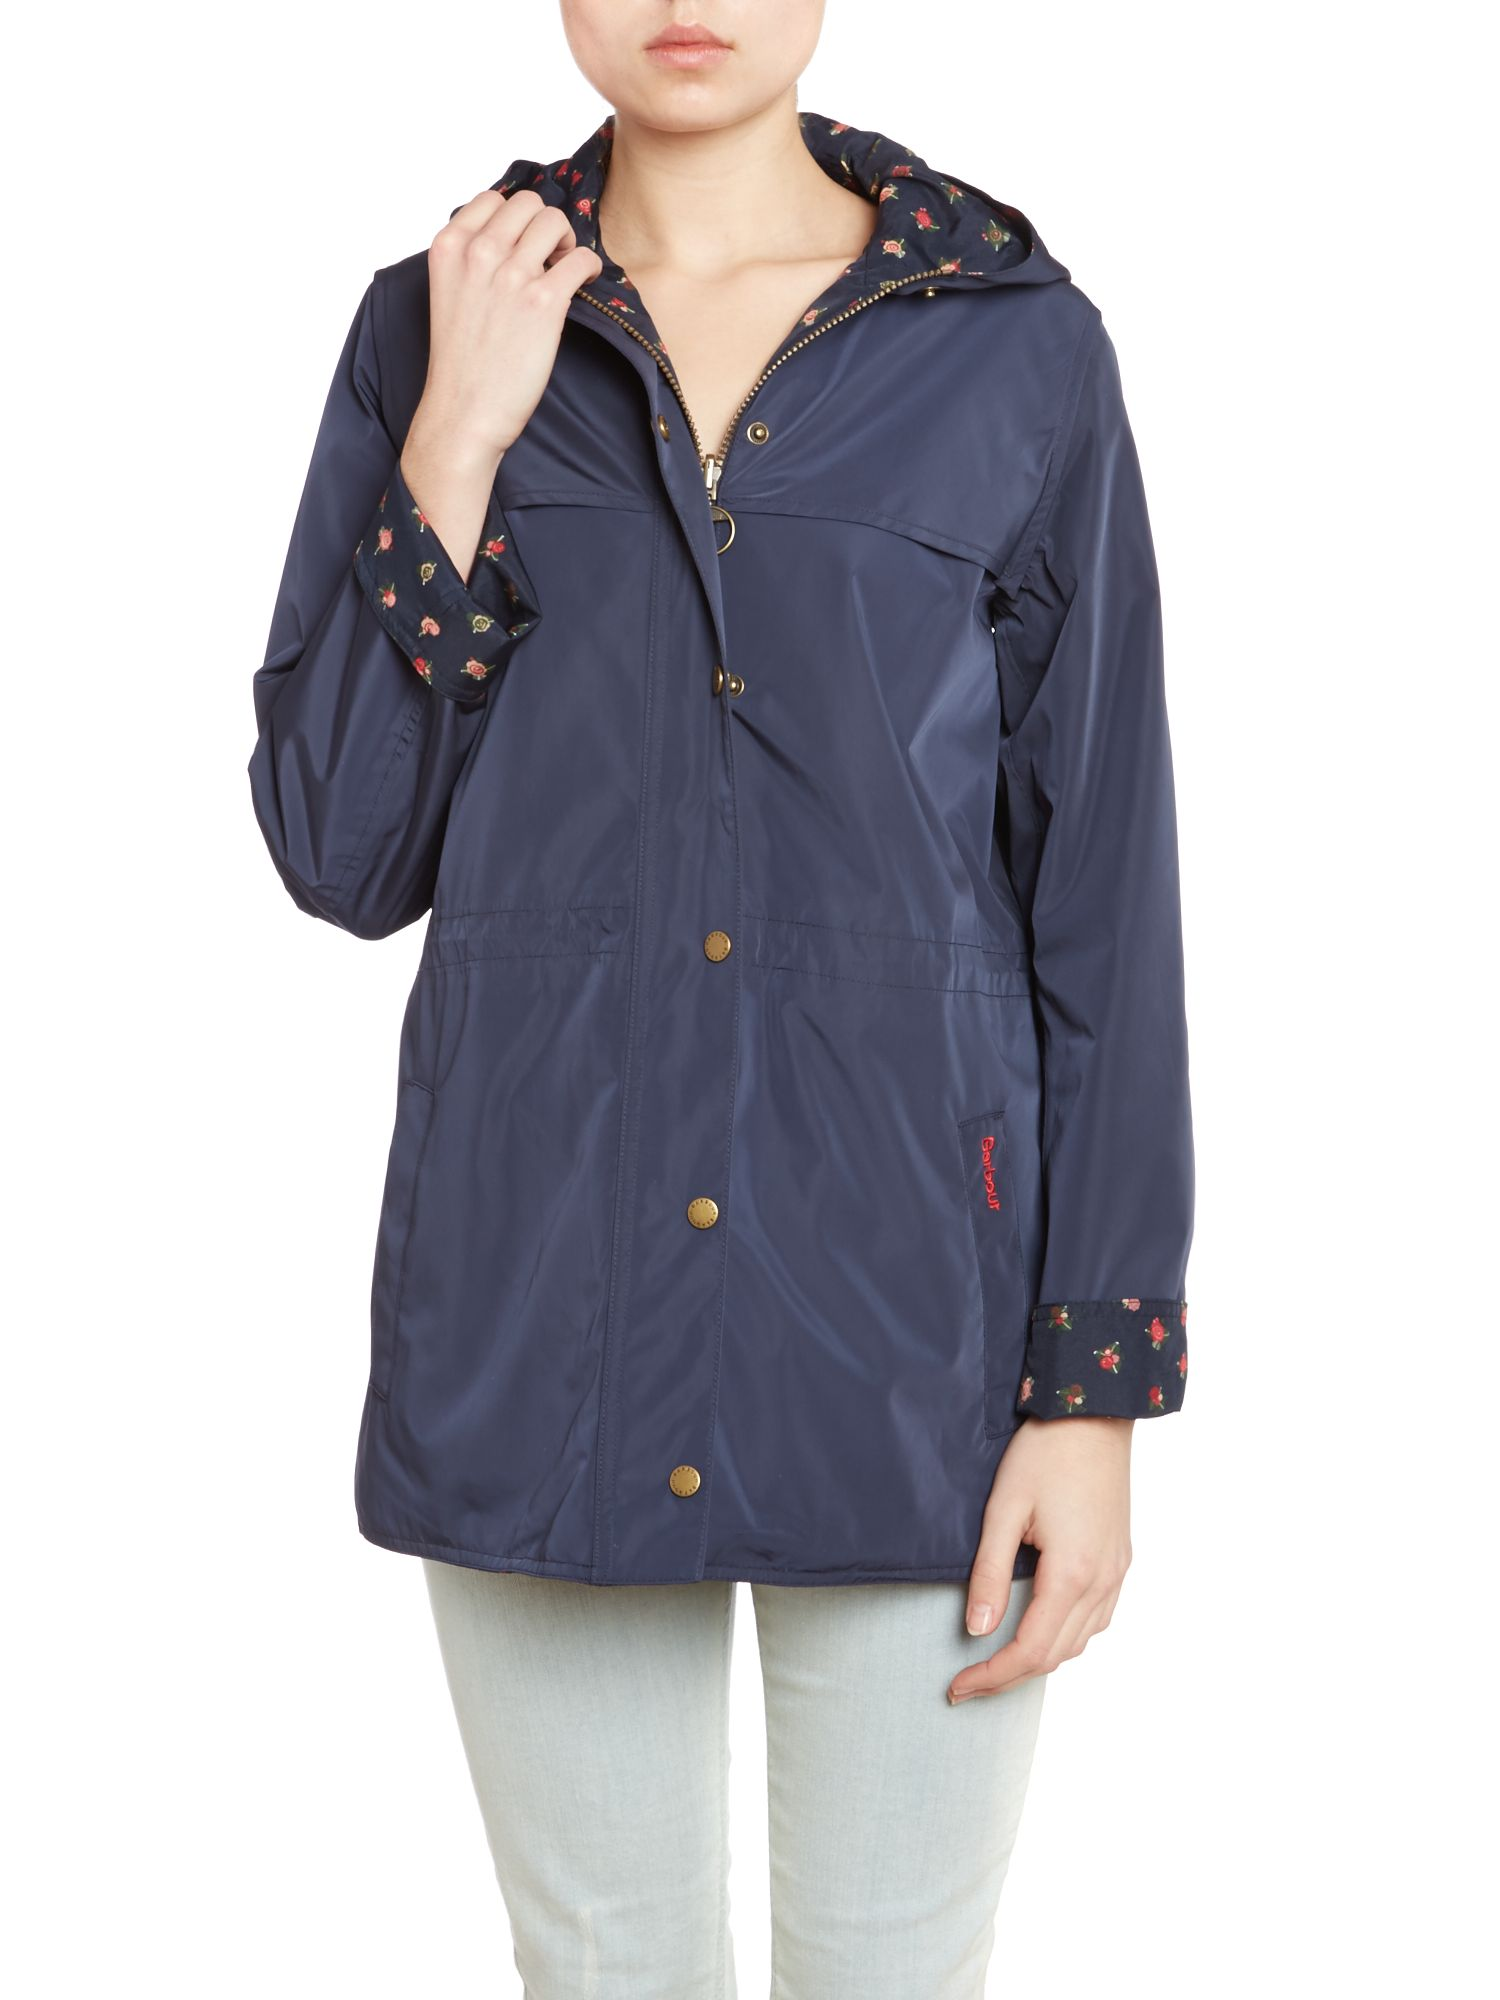 Hattie Durham Weatherproof Jacket